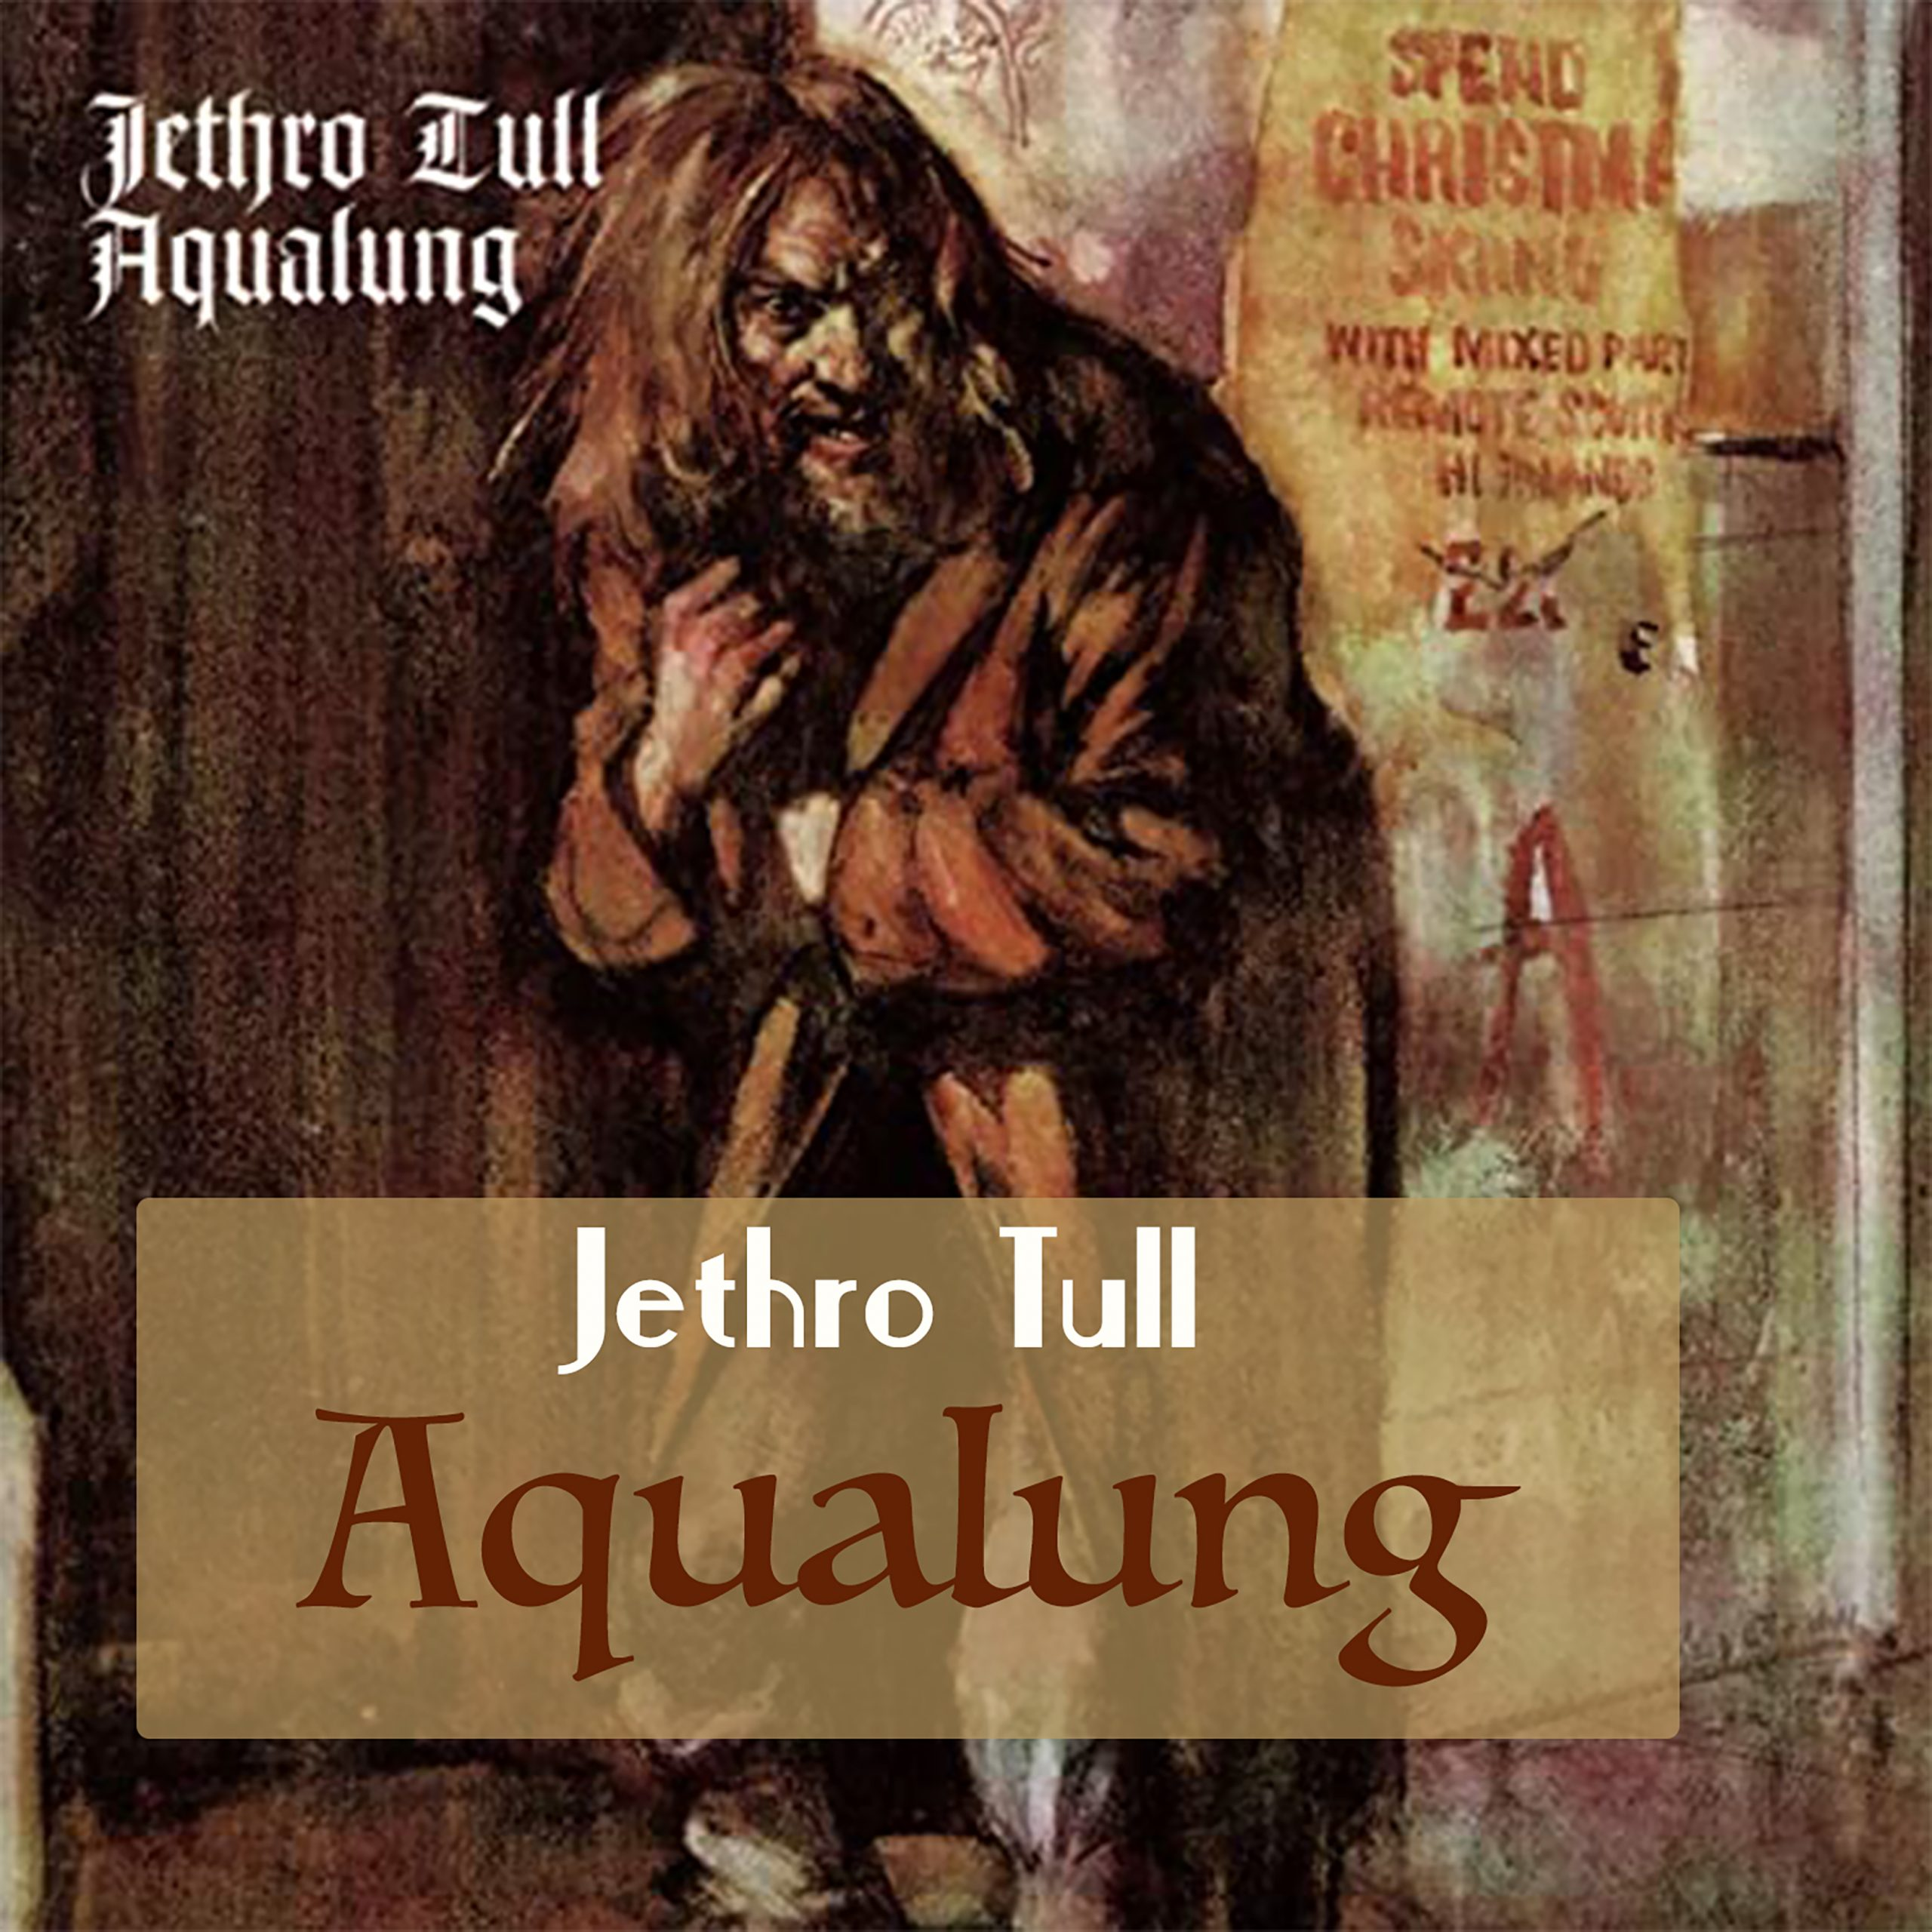 Aqualung 50th anniversary review